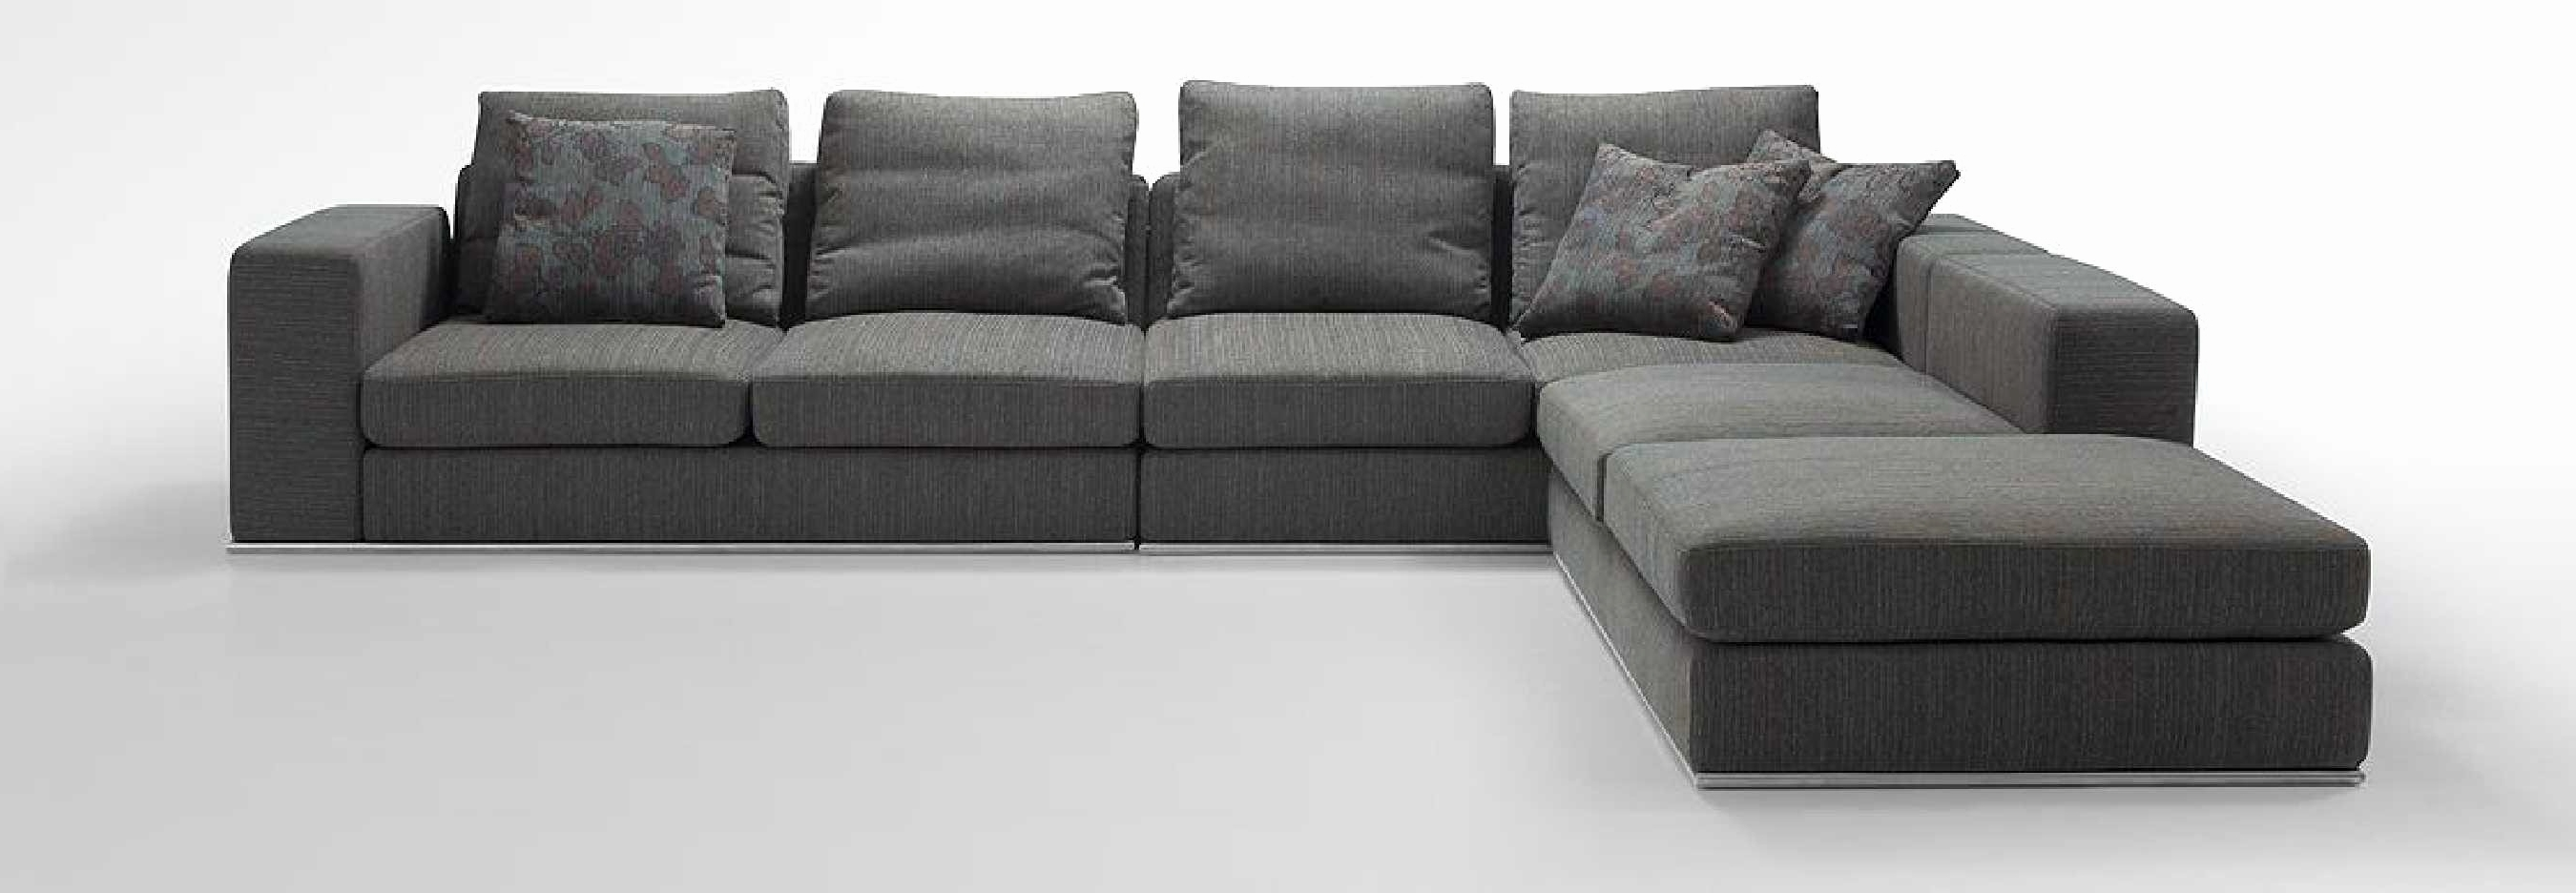 2018 L Shaped Sectional Sleeper Sofas Regarding New Grey L Shaped Sectional 2018 – Couches And Sofas Ideas (View 2 of 15)